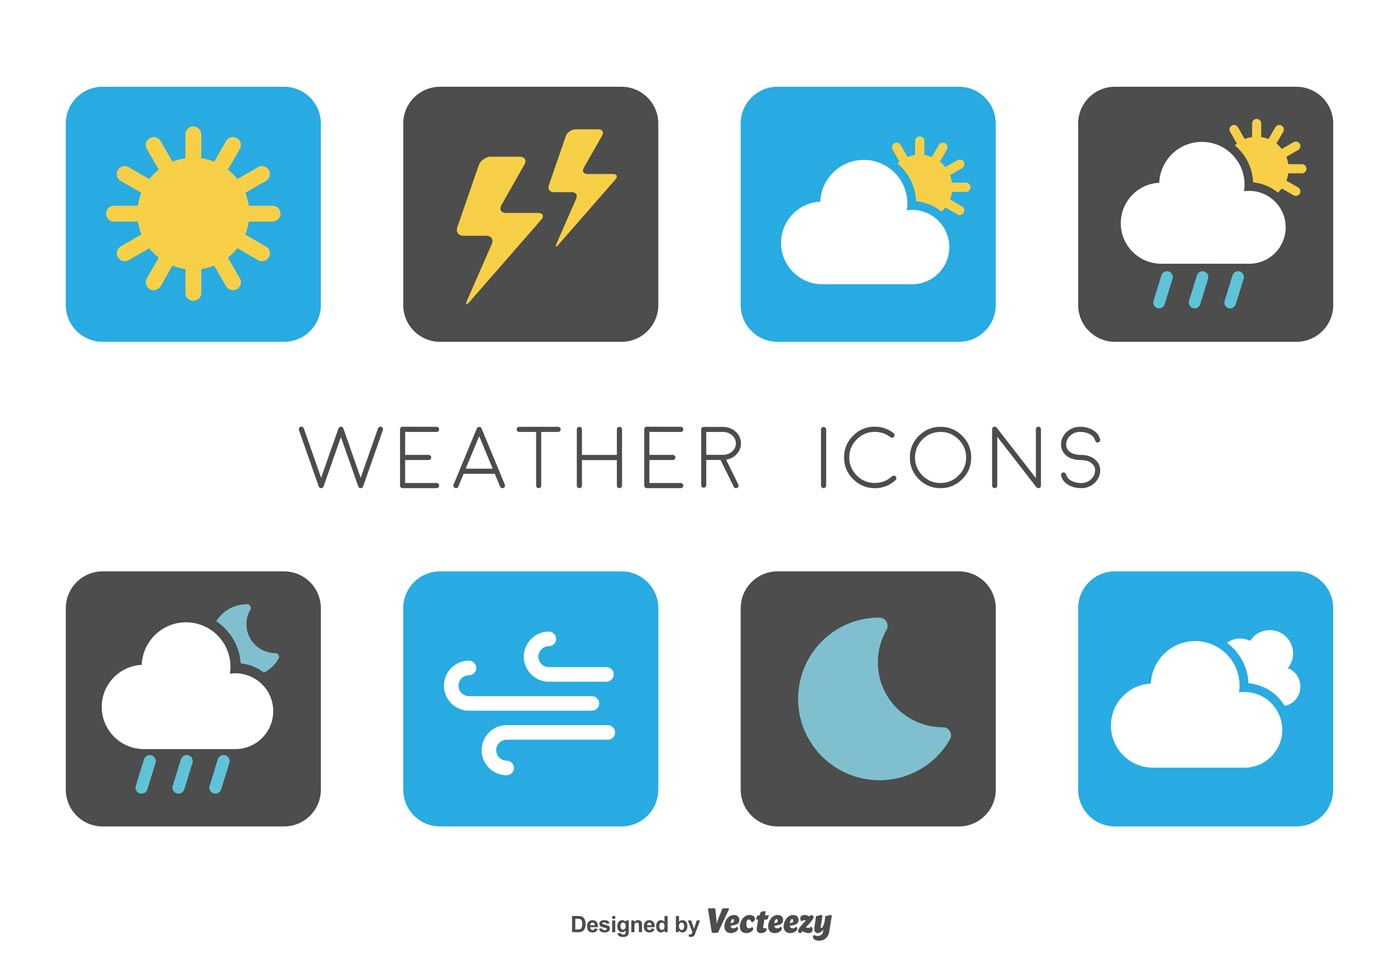 Weather Forecast Symbols Thunderstorm